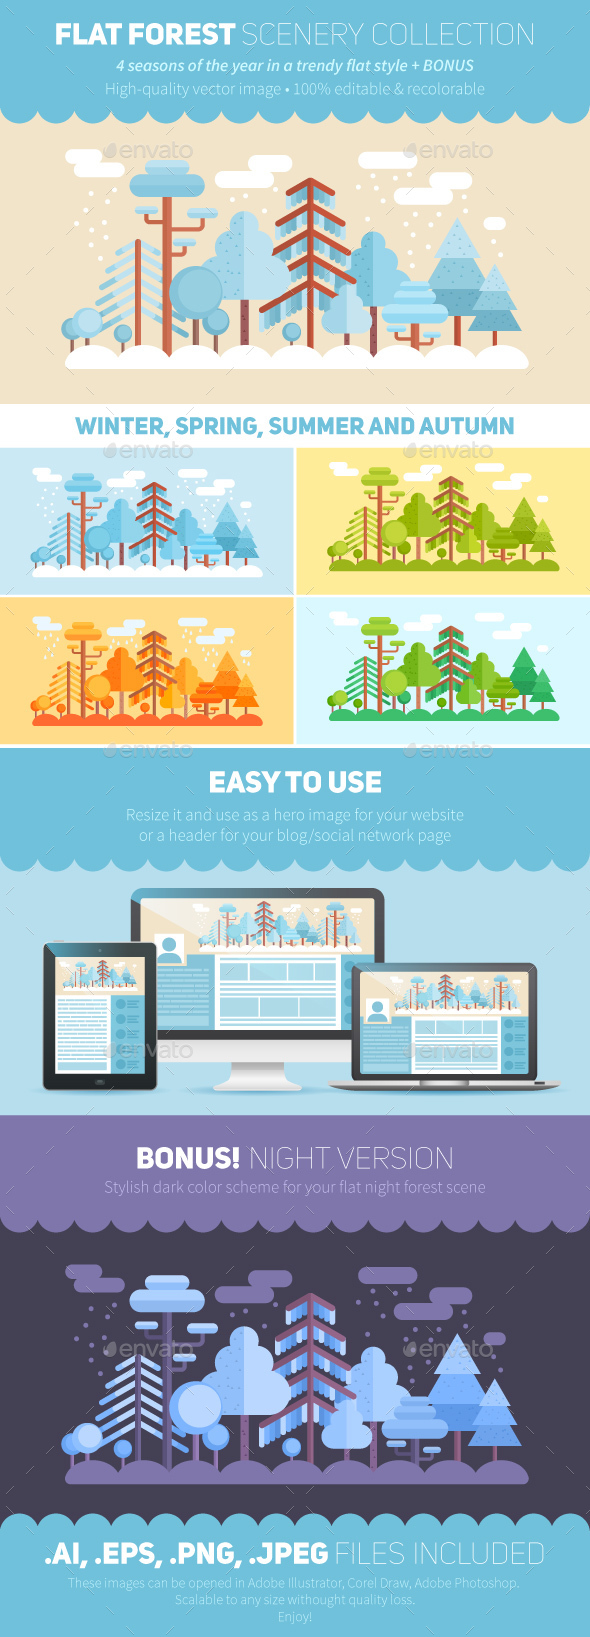 Flat Style Forest Scenery: 6 Color Schemes - Seasons Nature